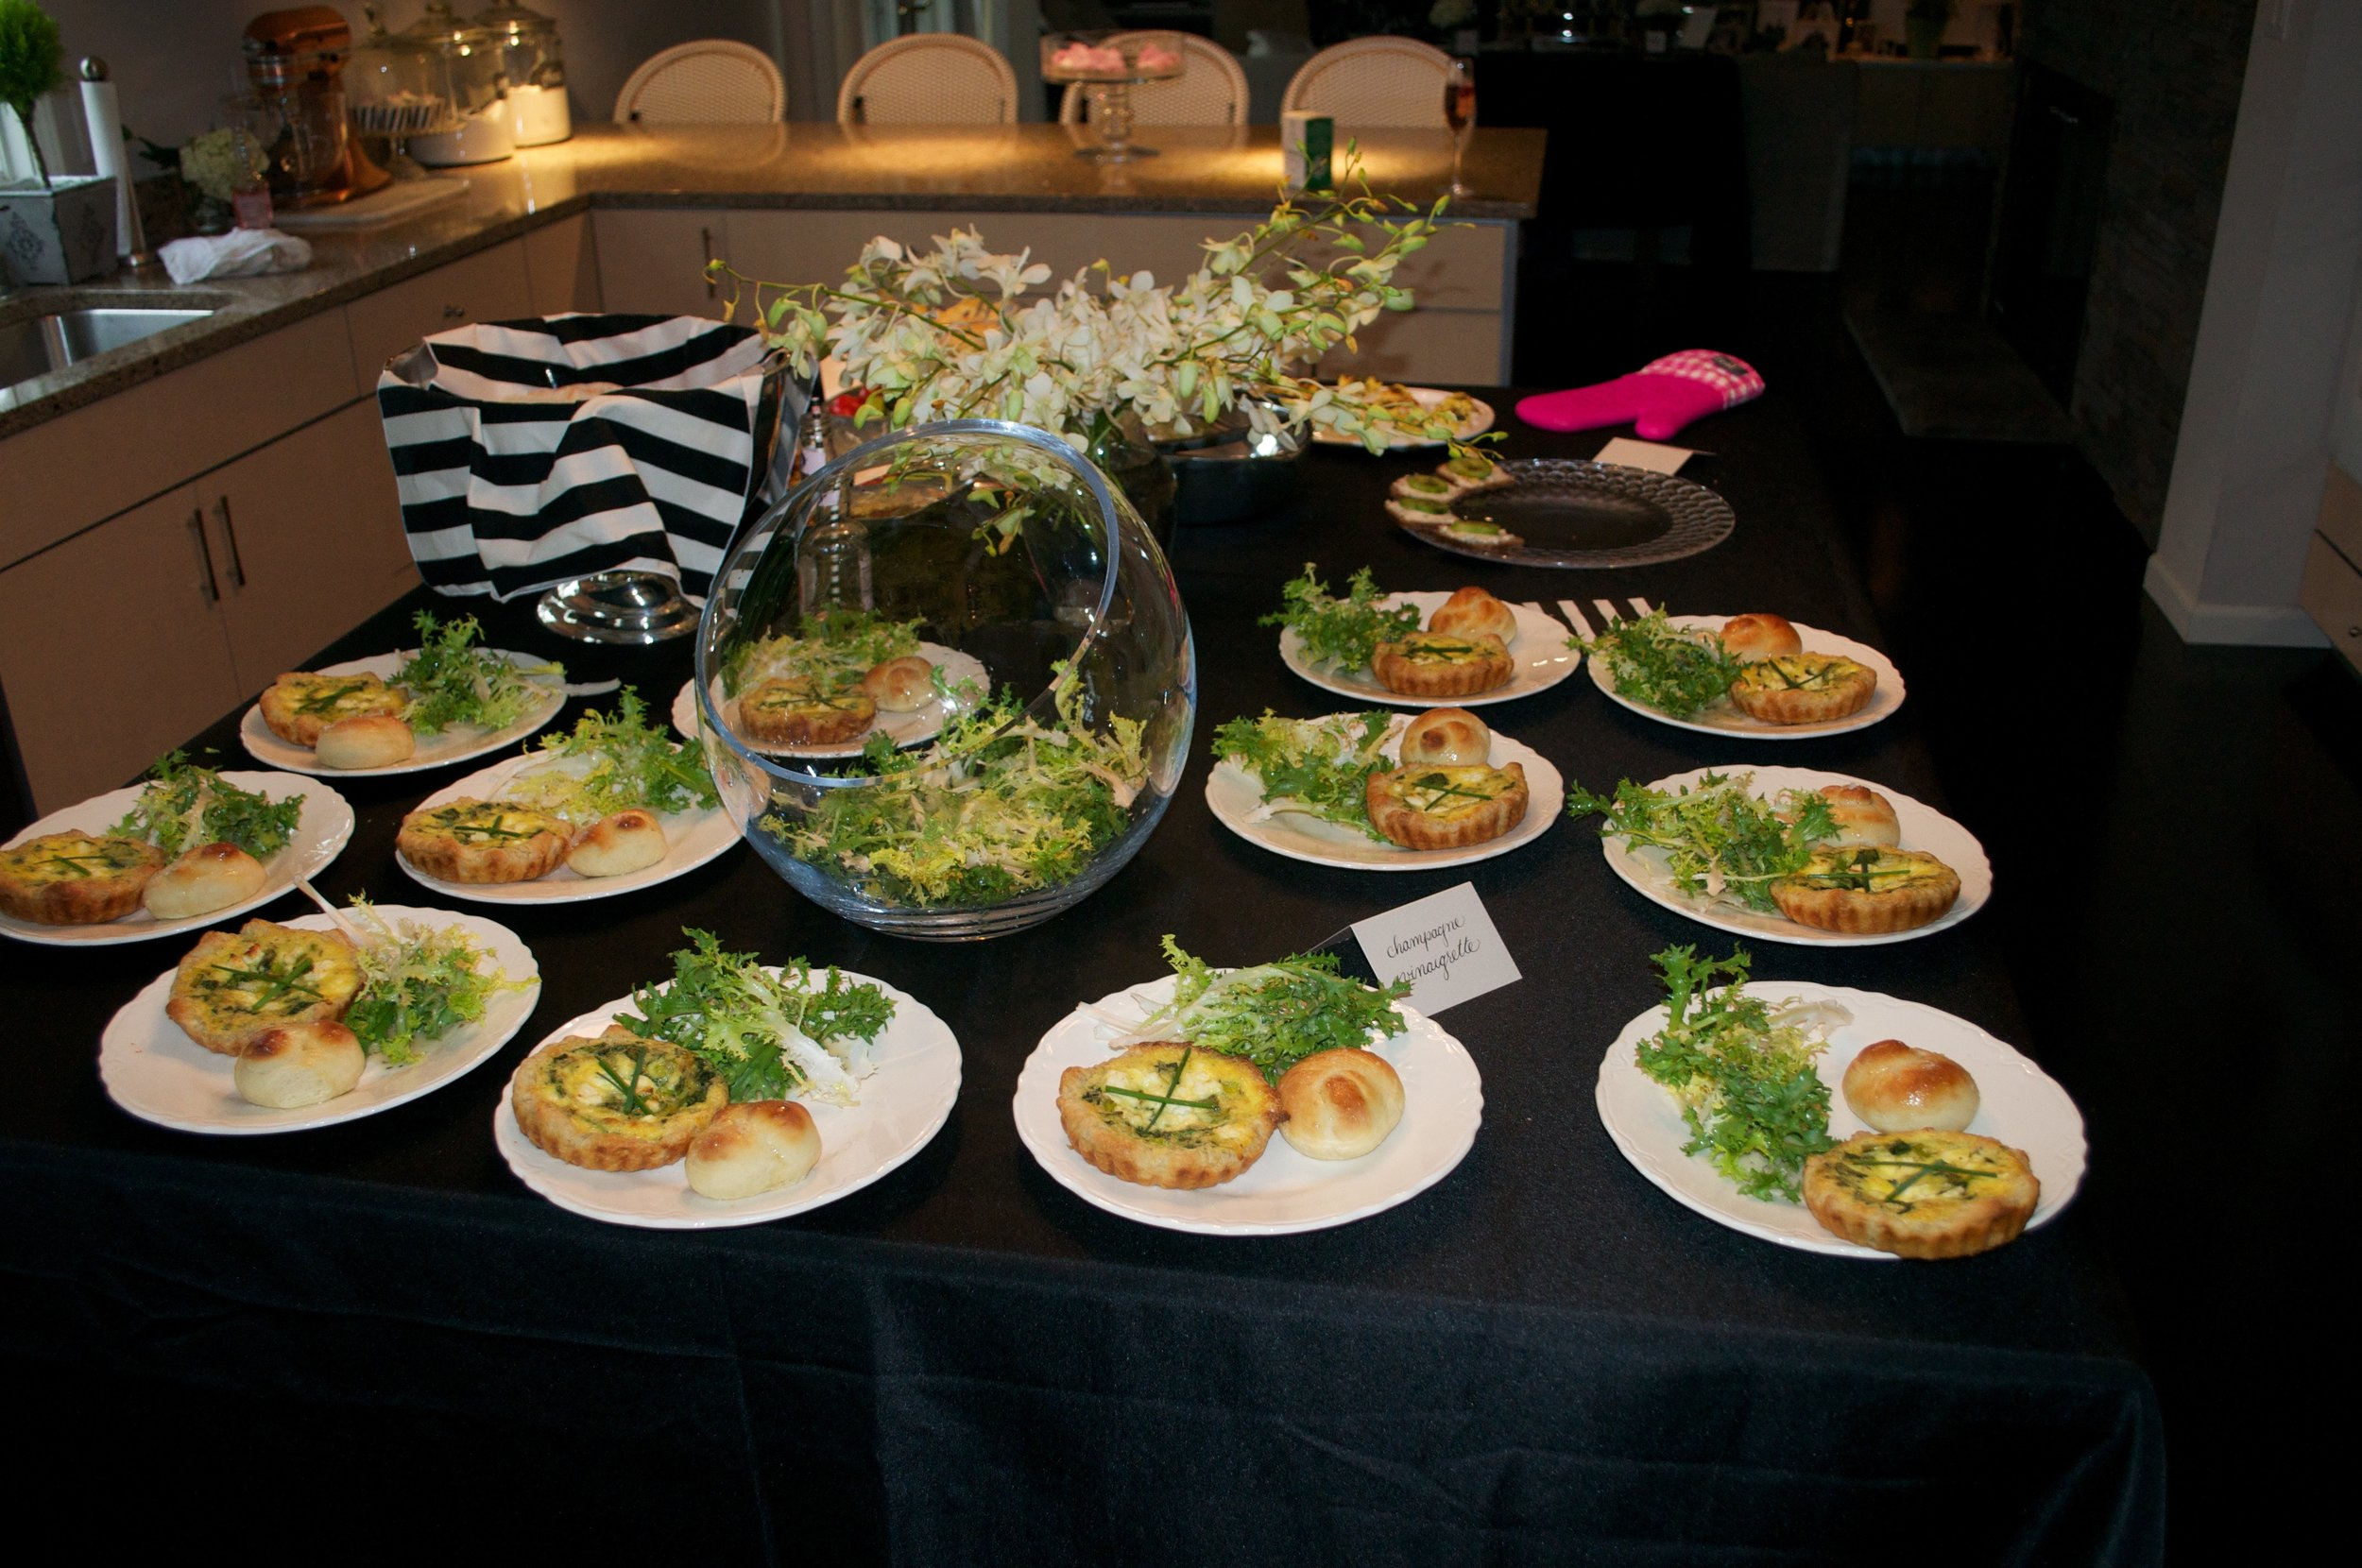 Mini gruyère quiches and garlic knot rolls with frisée salad and champagne vinaigrette